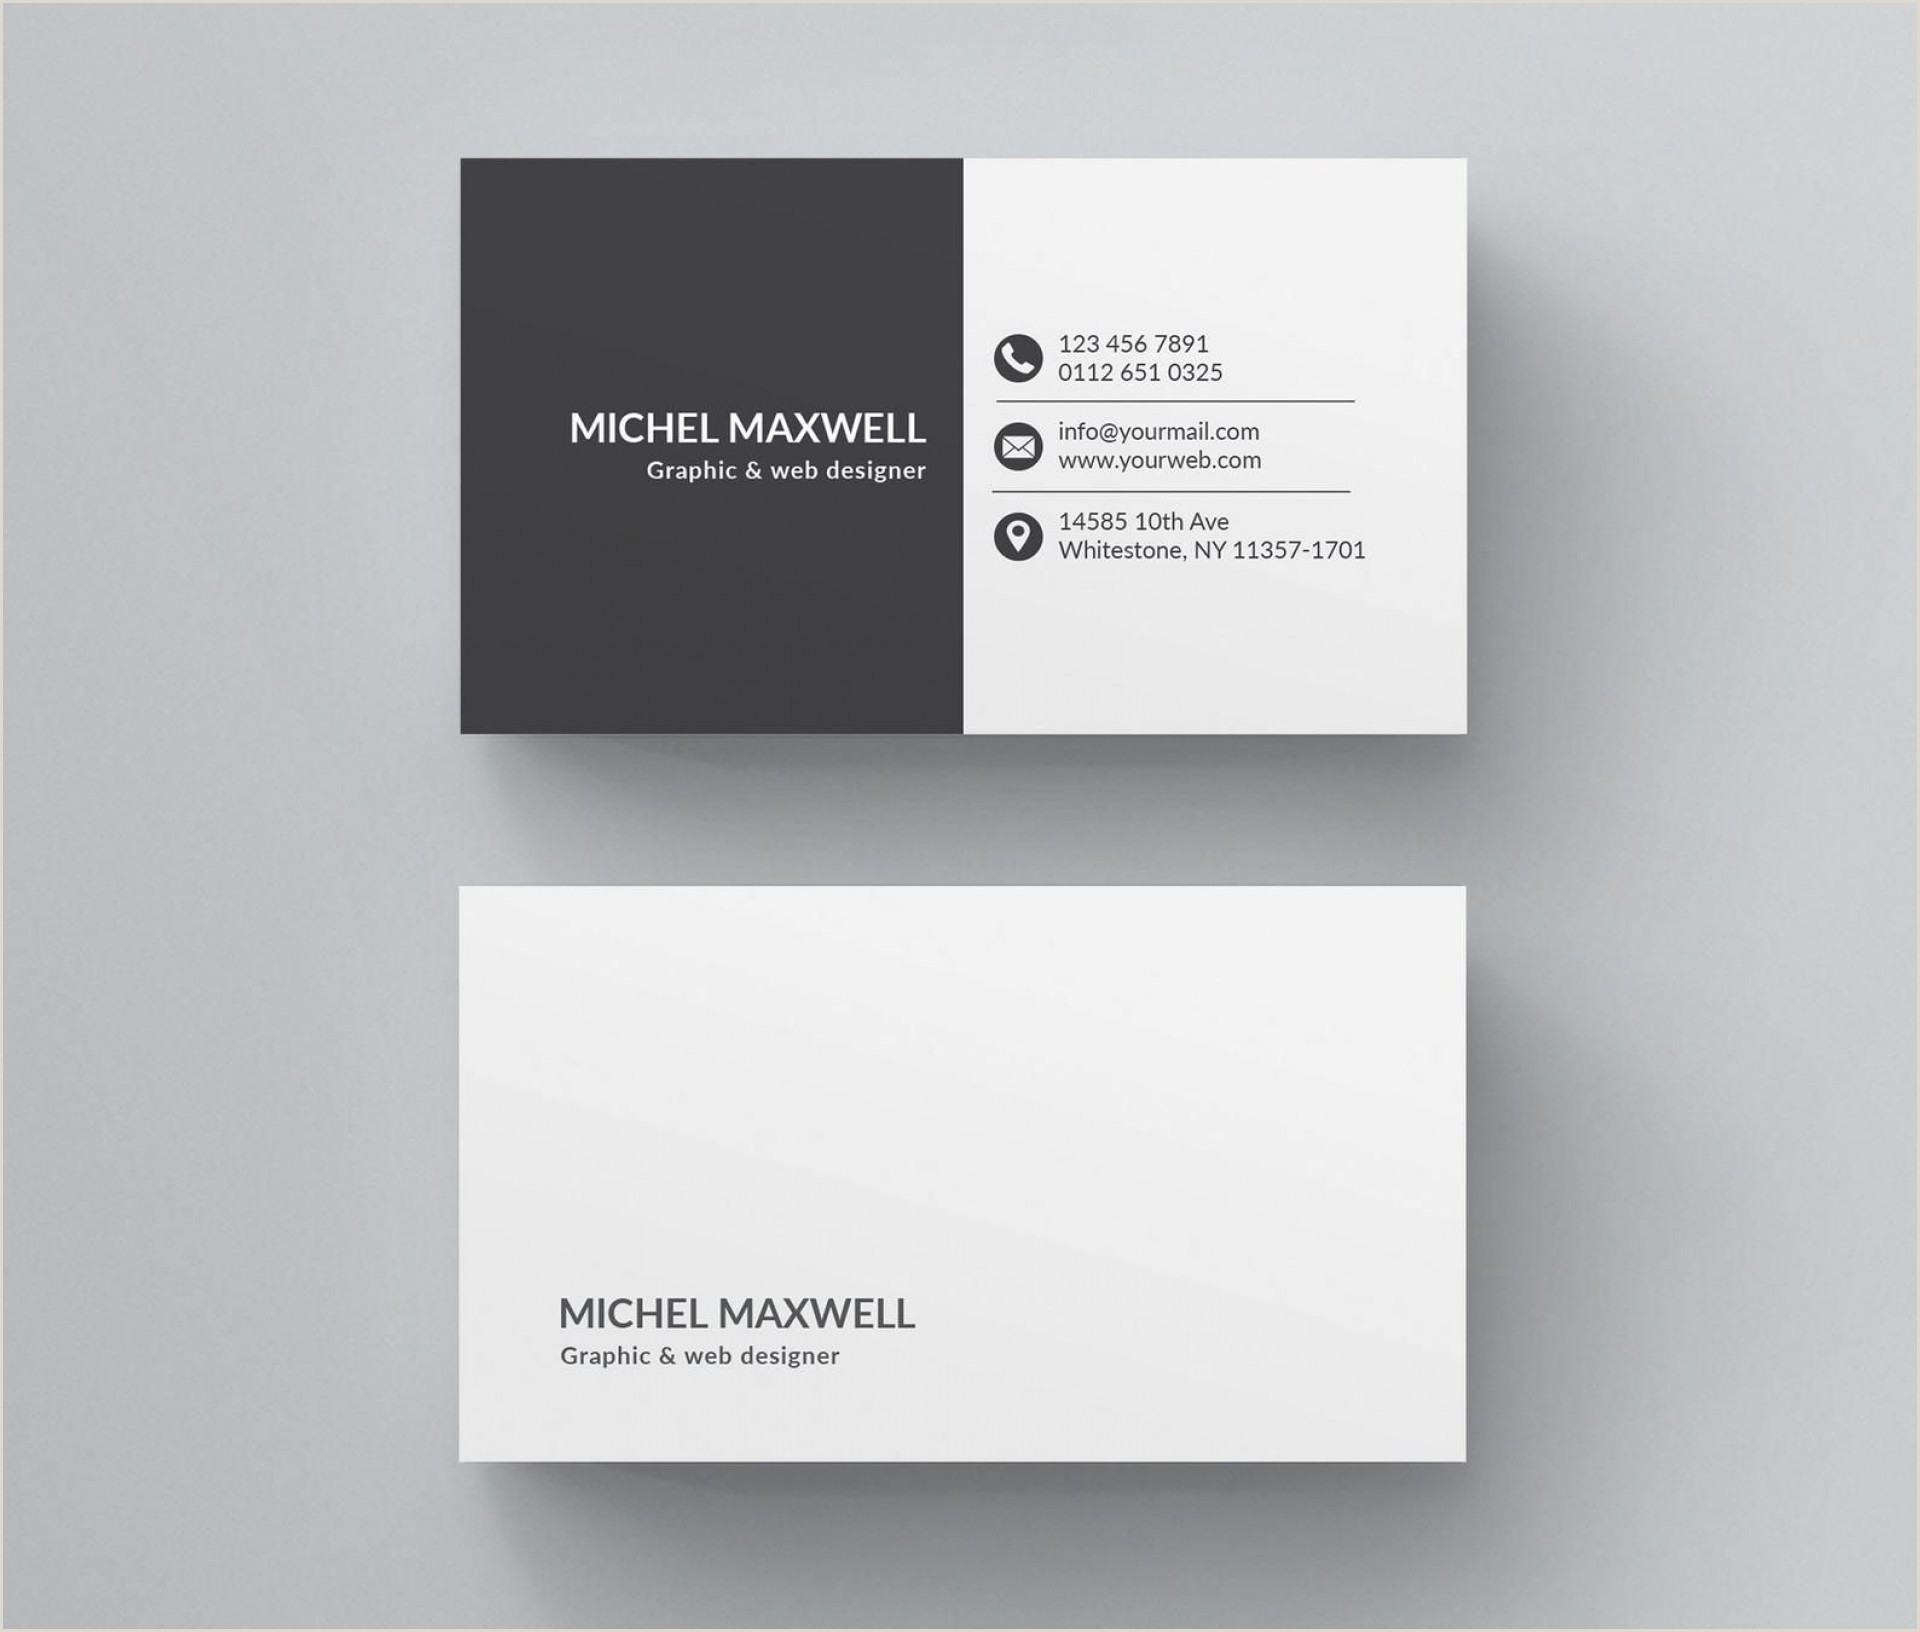 Horizontal Vs Vertical Business Cards Word Business Cards Templates